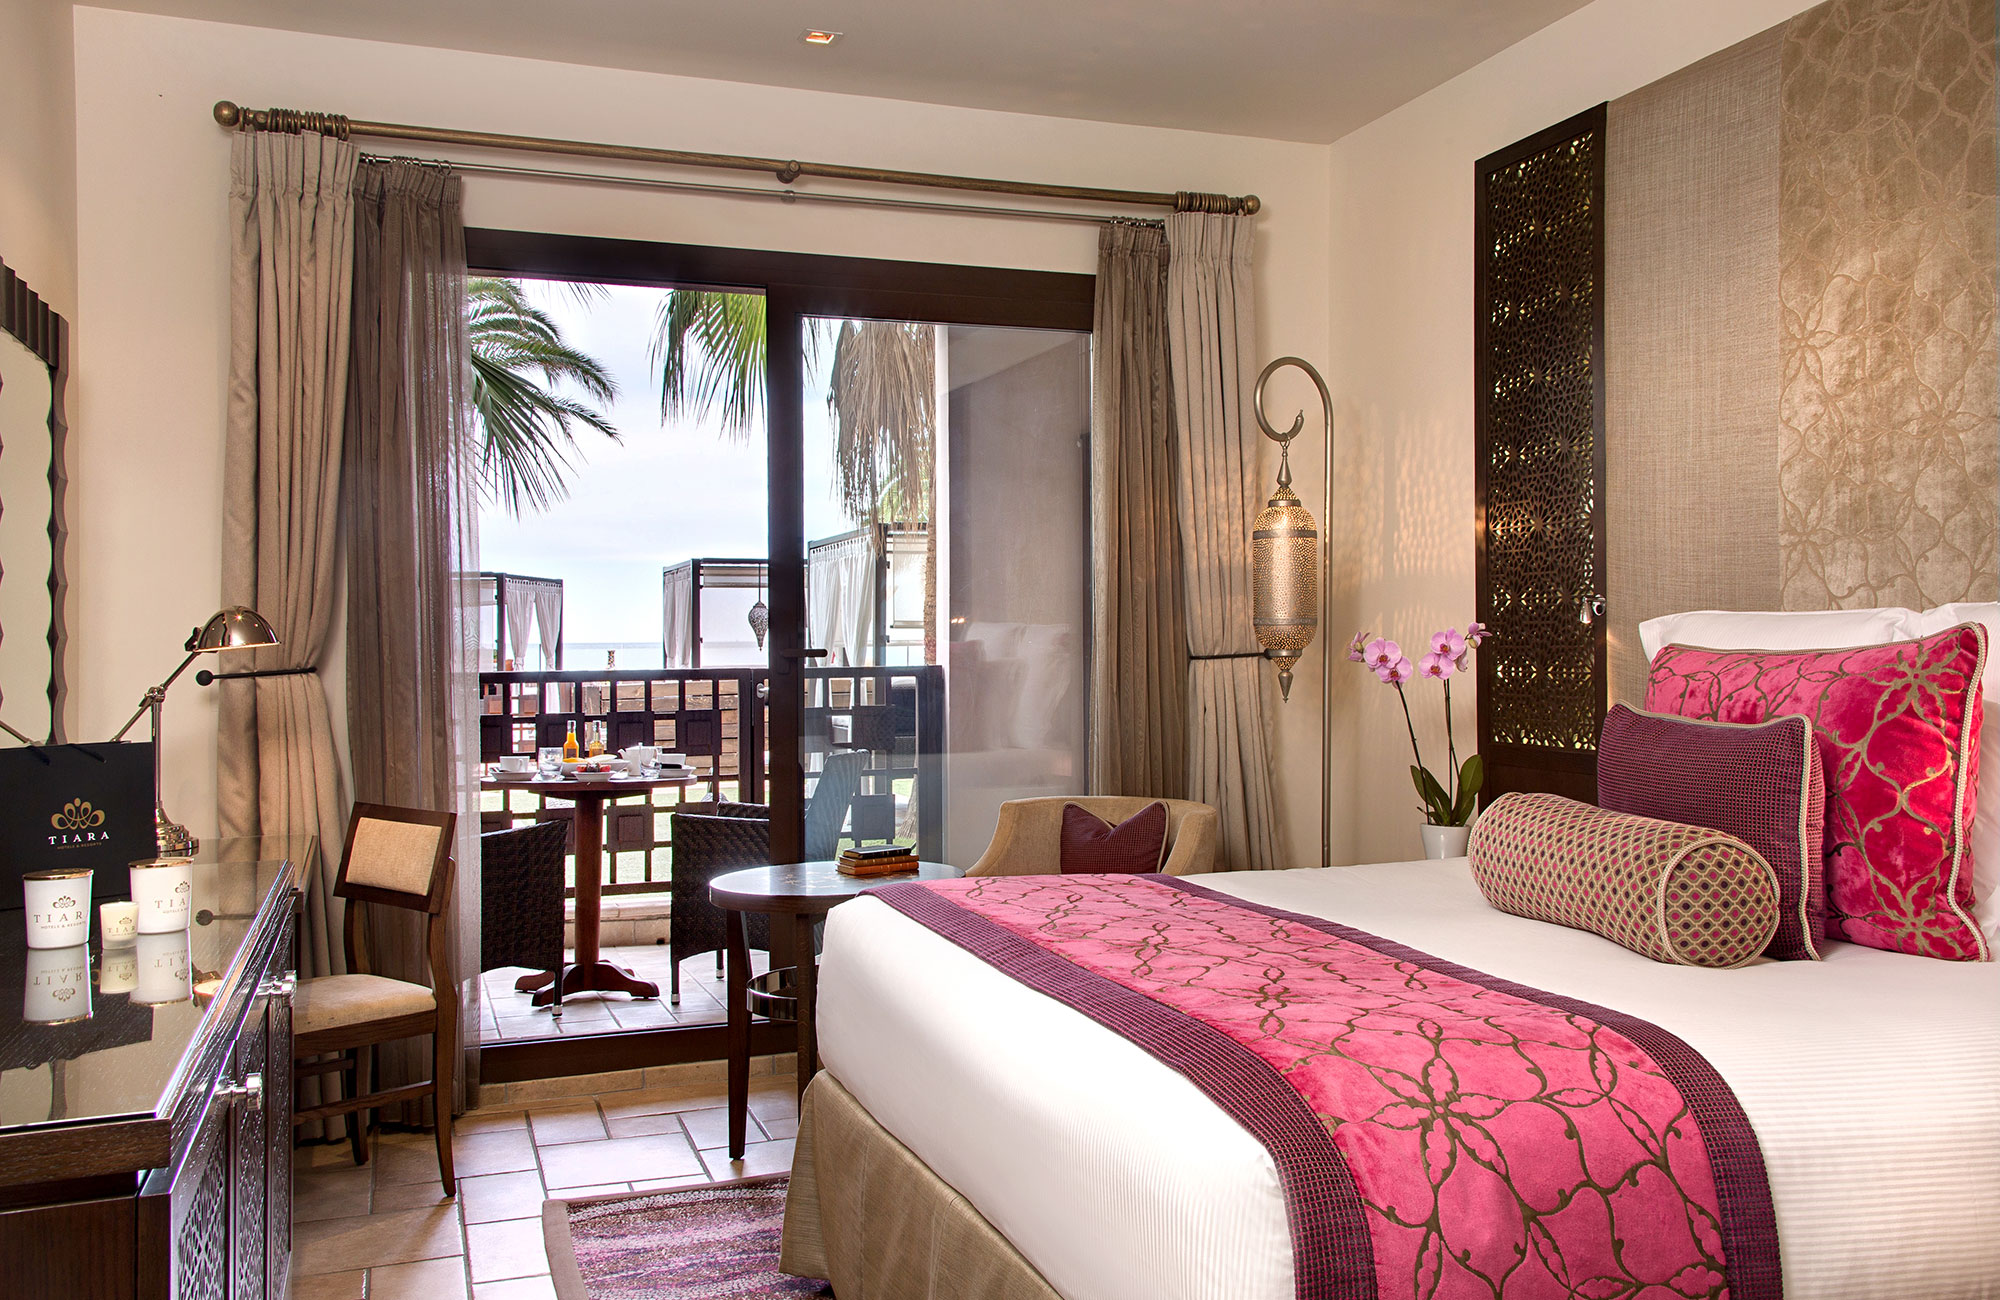 Miramar Beach Hotel & Spa - Superior Room - Overview